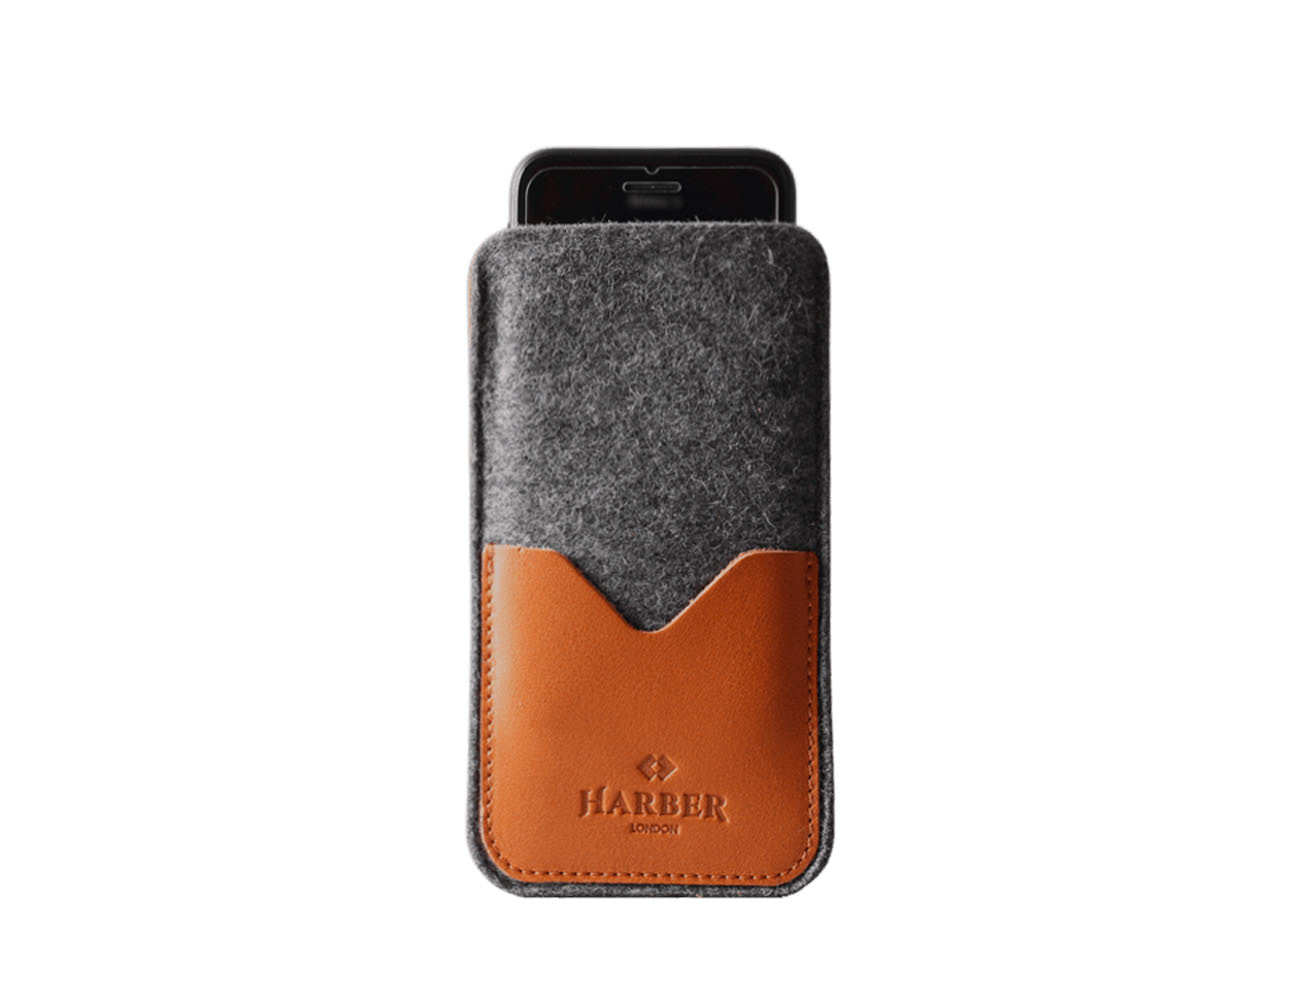 Harber London Leather Smartphone Sleeve Wallet